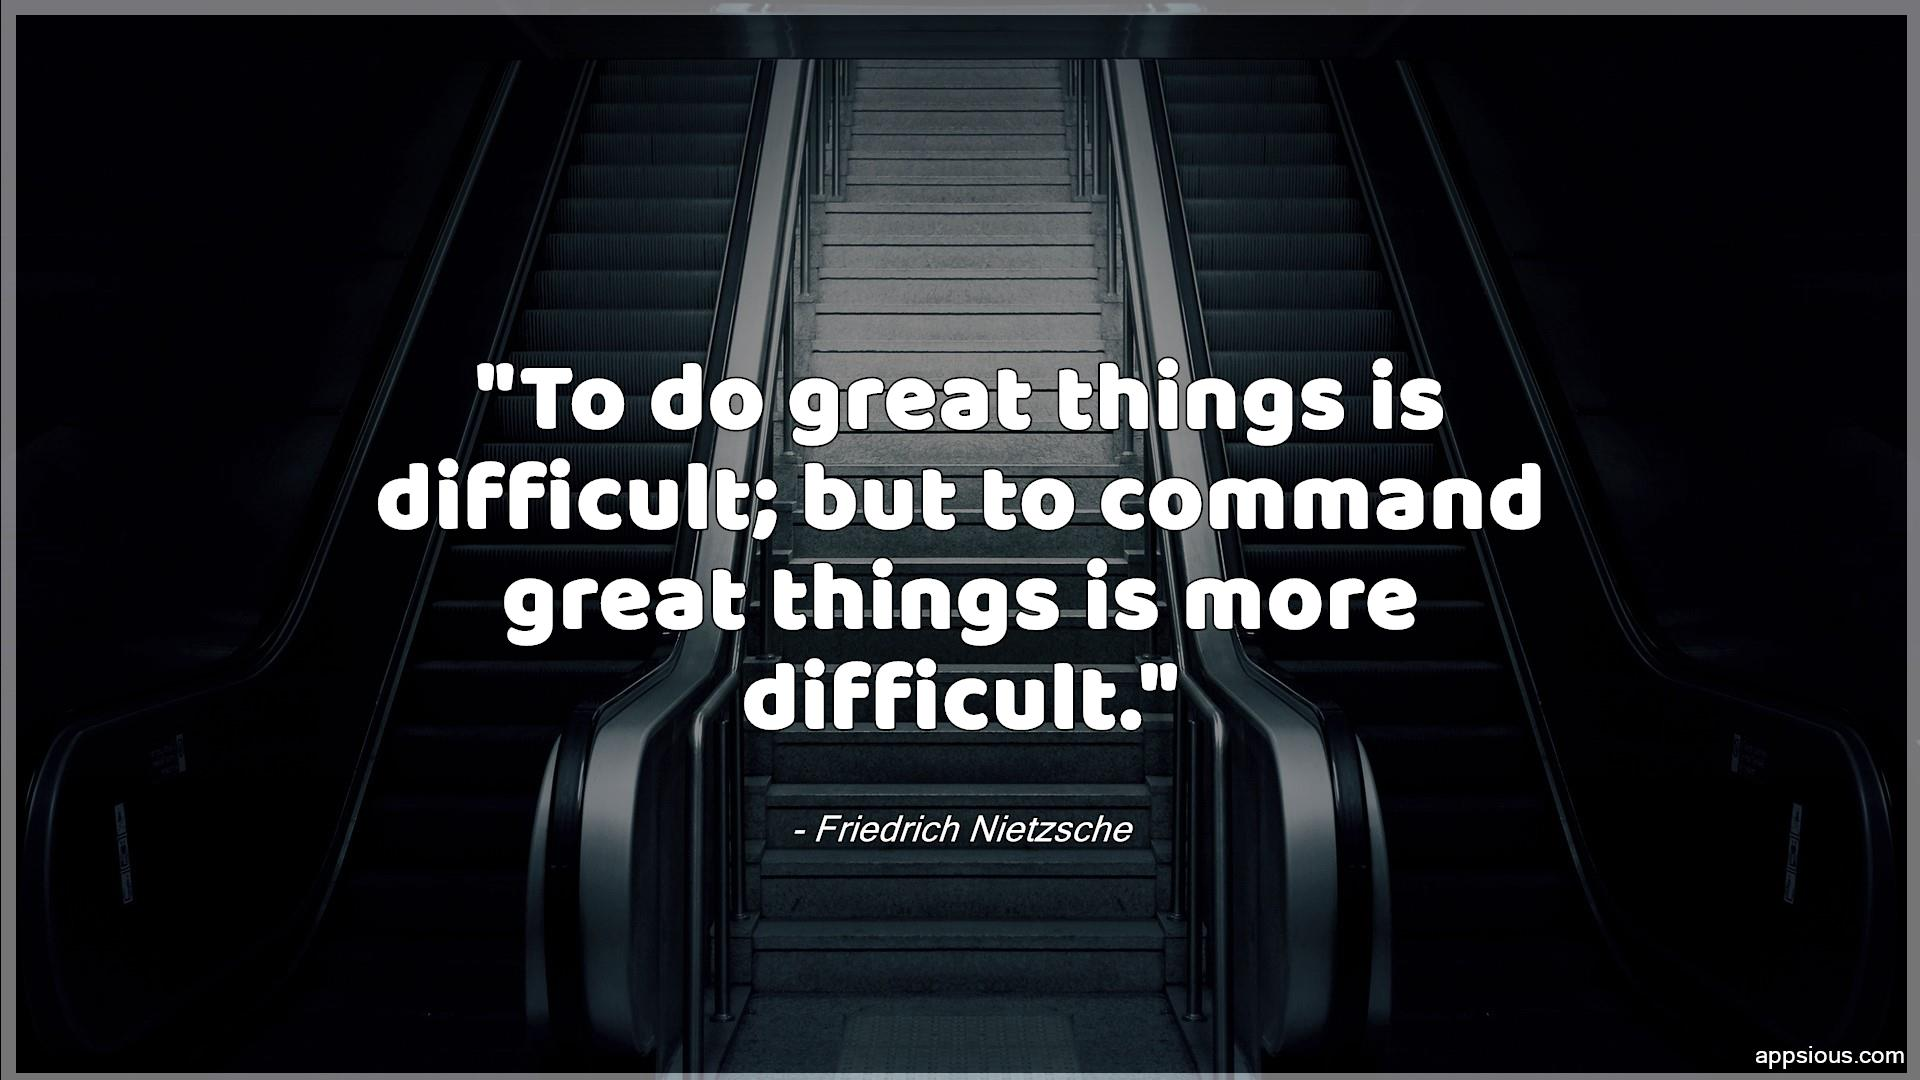 To do great things is difficult; but to command great things is more difficult.